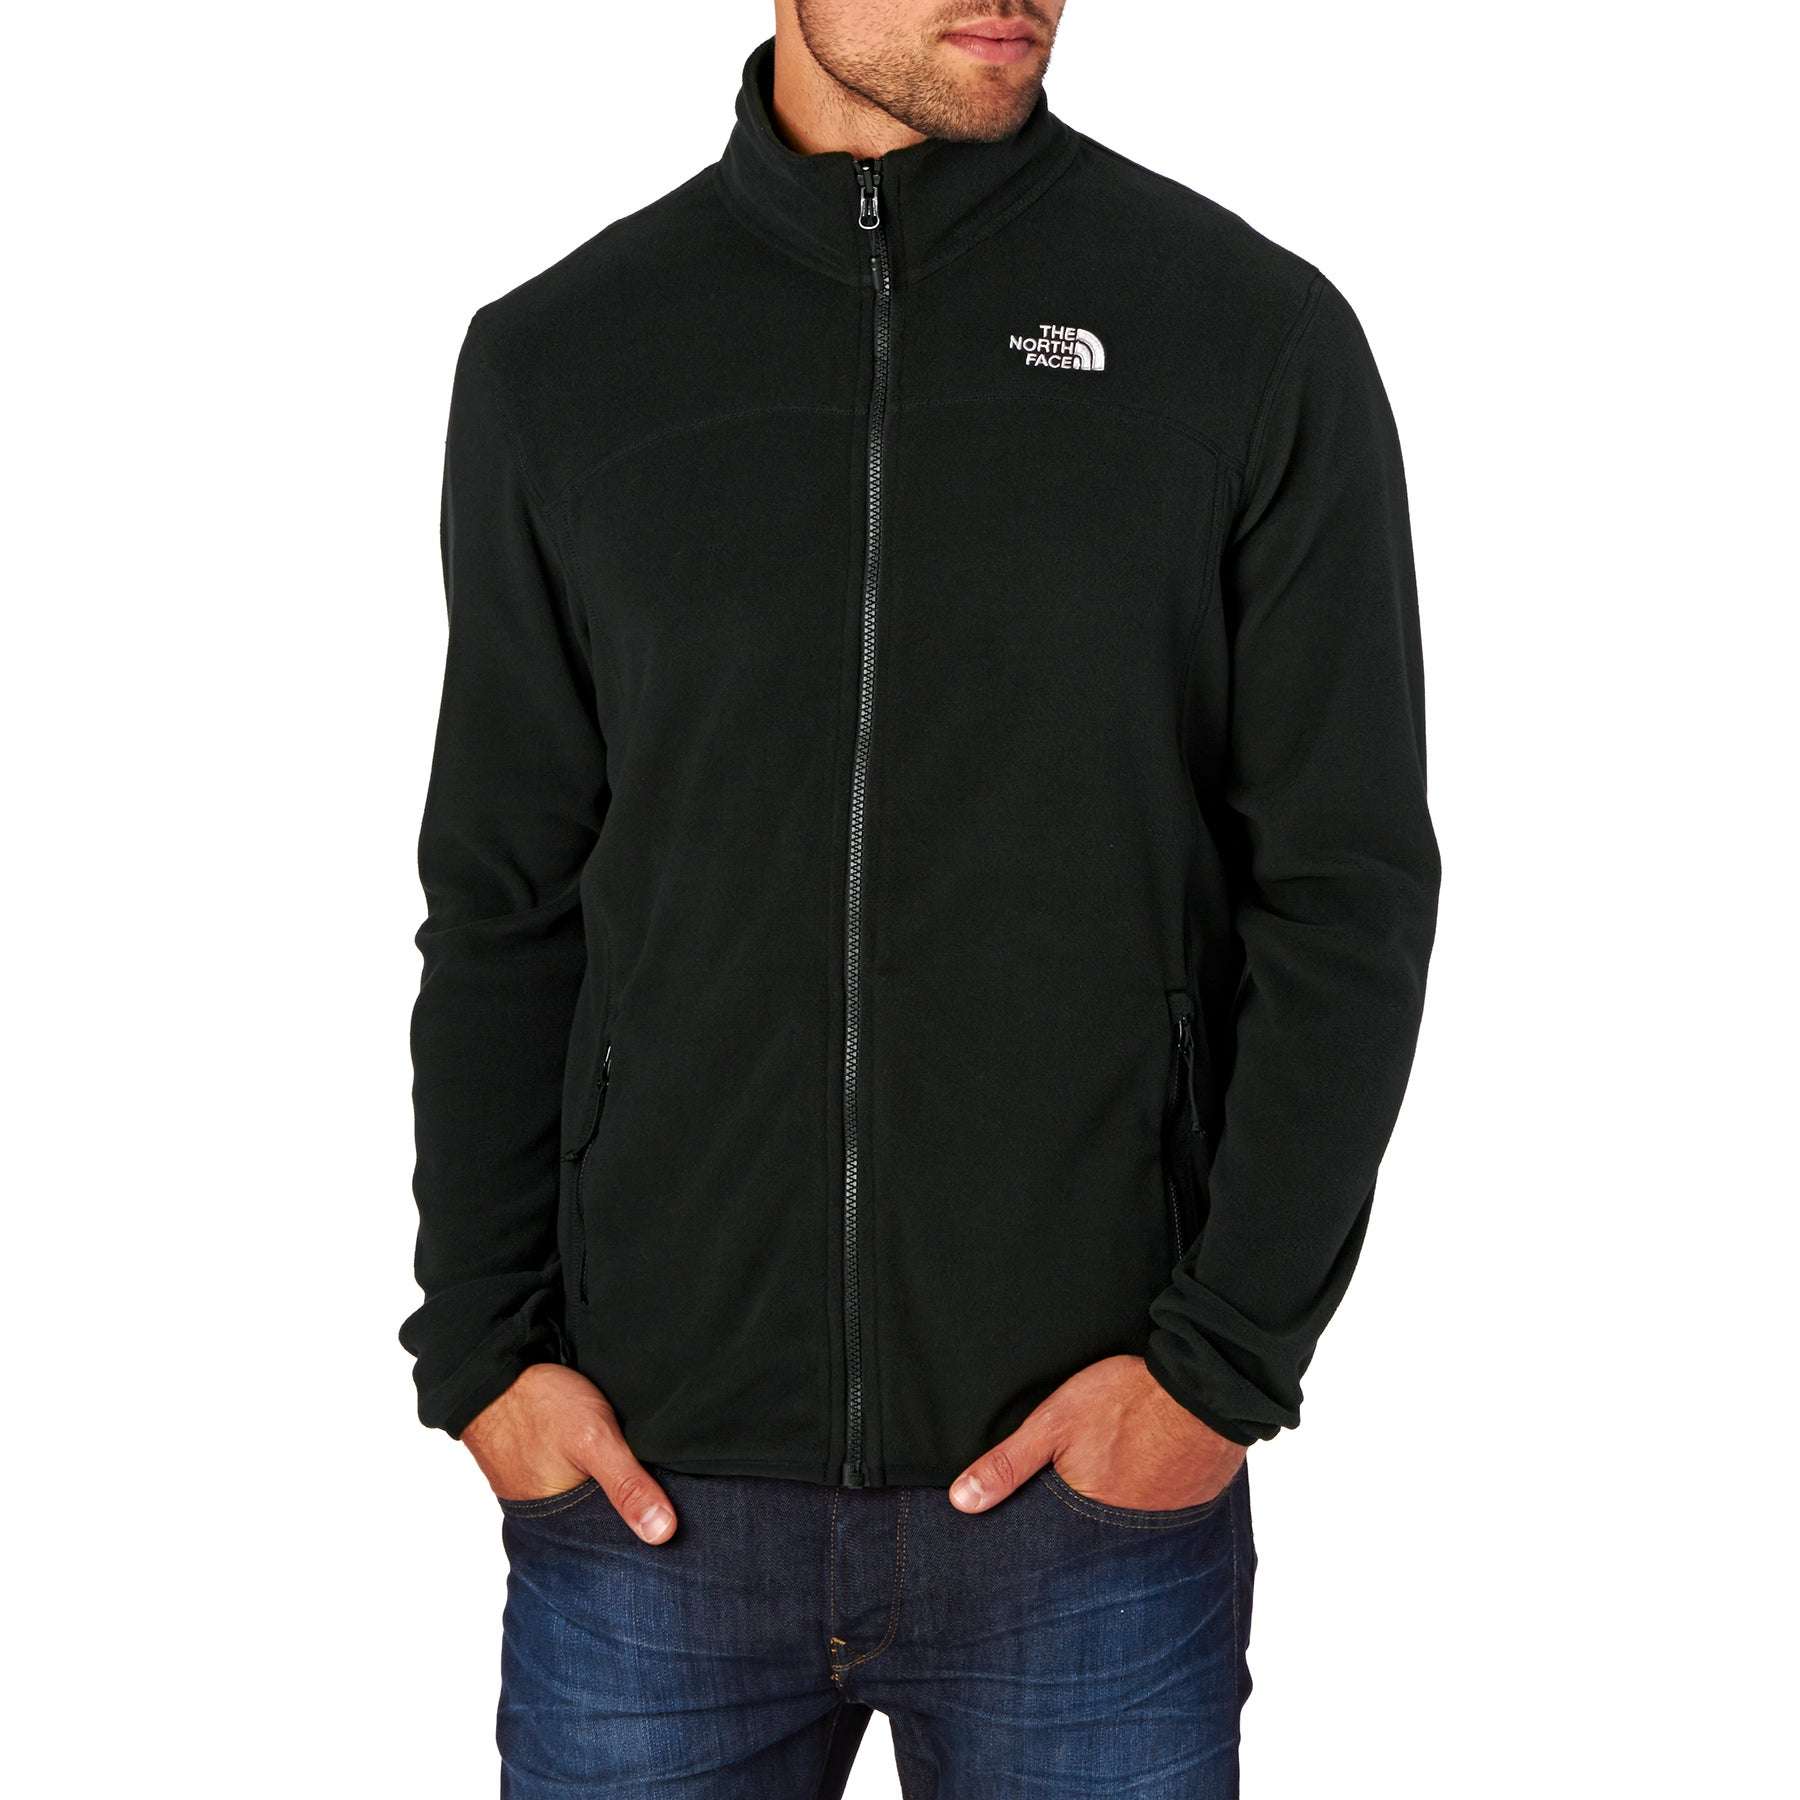 North Face 100 Glacier Full Zip Fleece - TNF Black